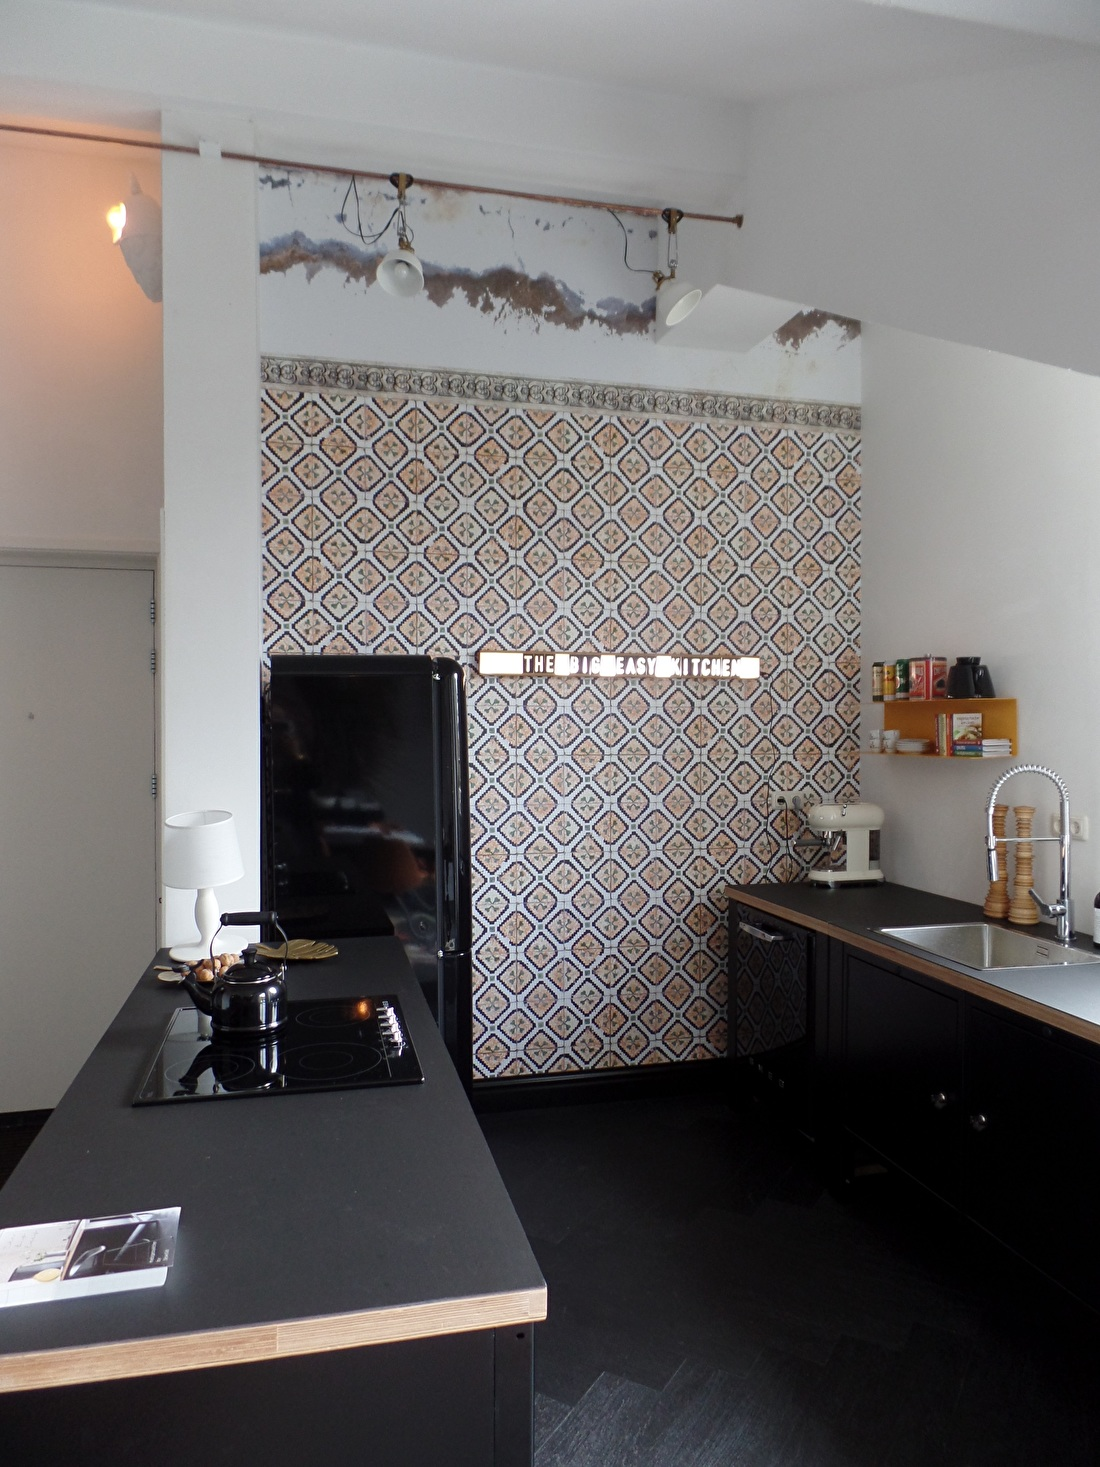 the big easy modular kitchen eiland behangfabriek